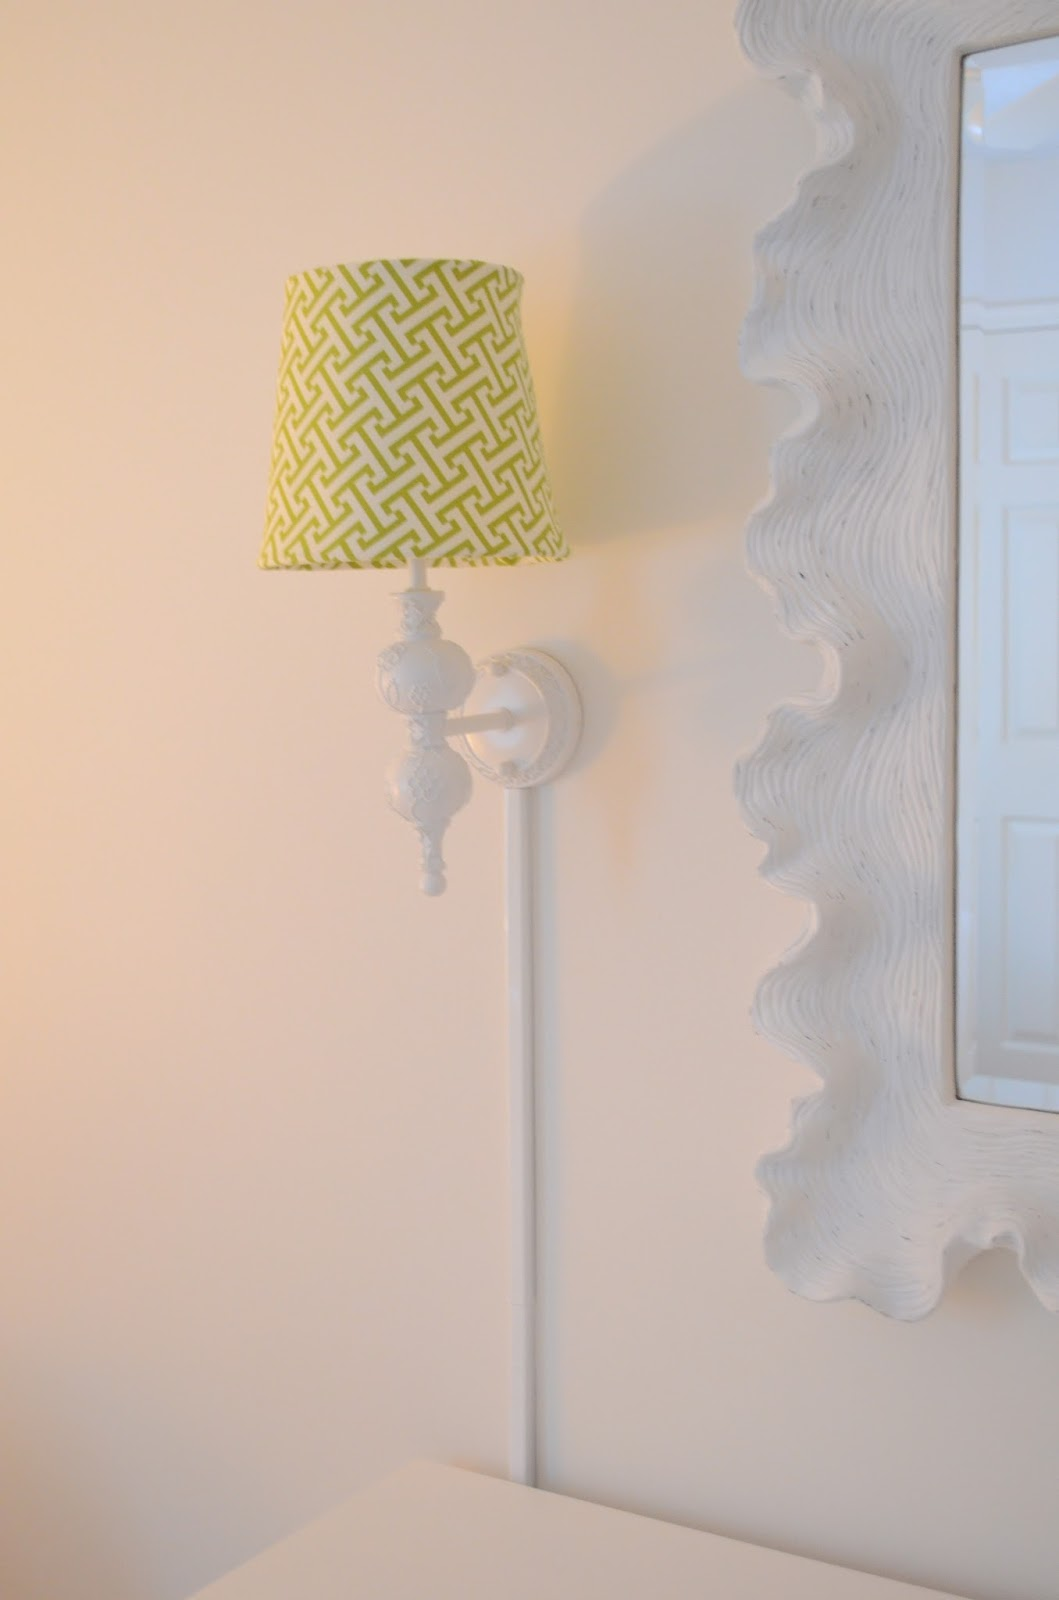 Wall Lamps With Cord Covers : Sconces With Cords Home Decoration Club